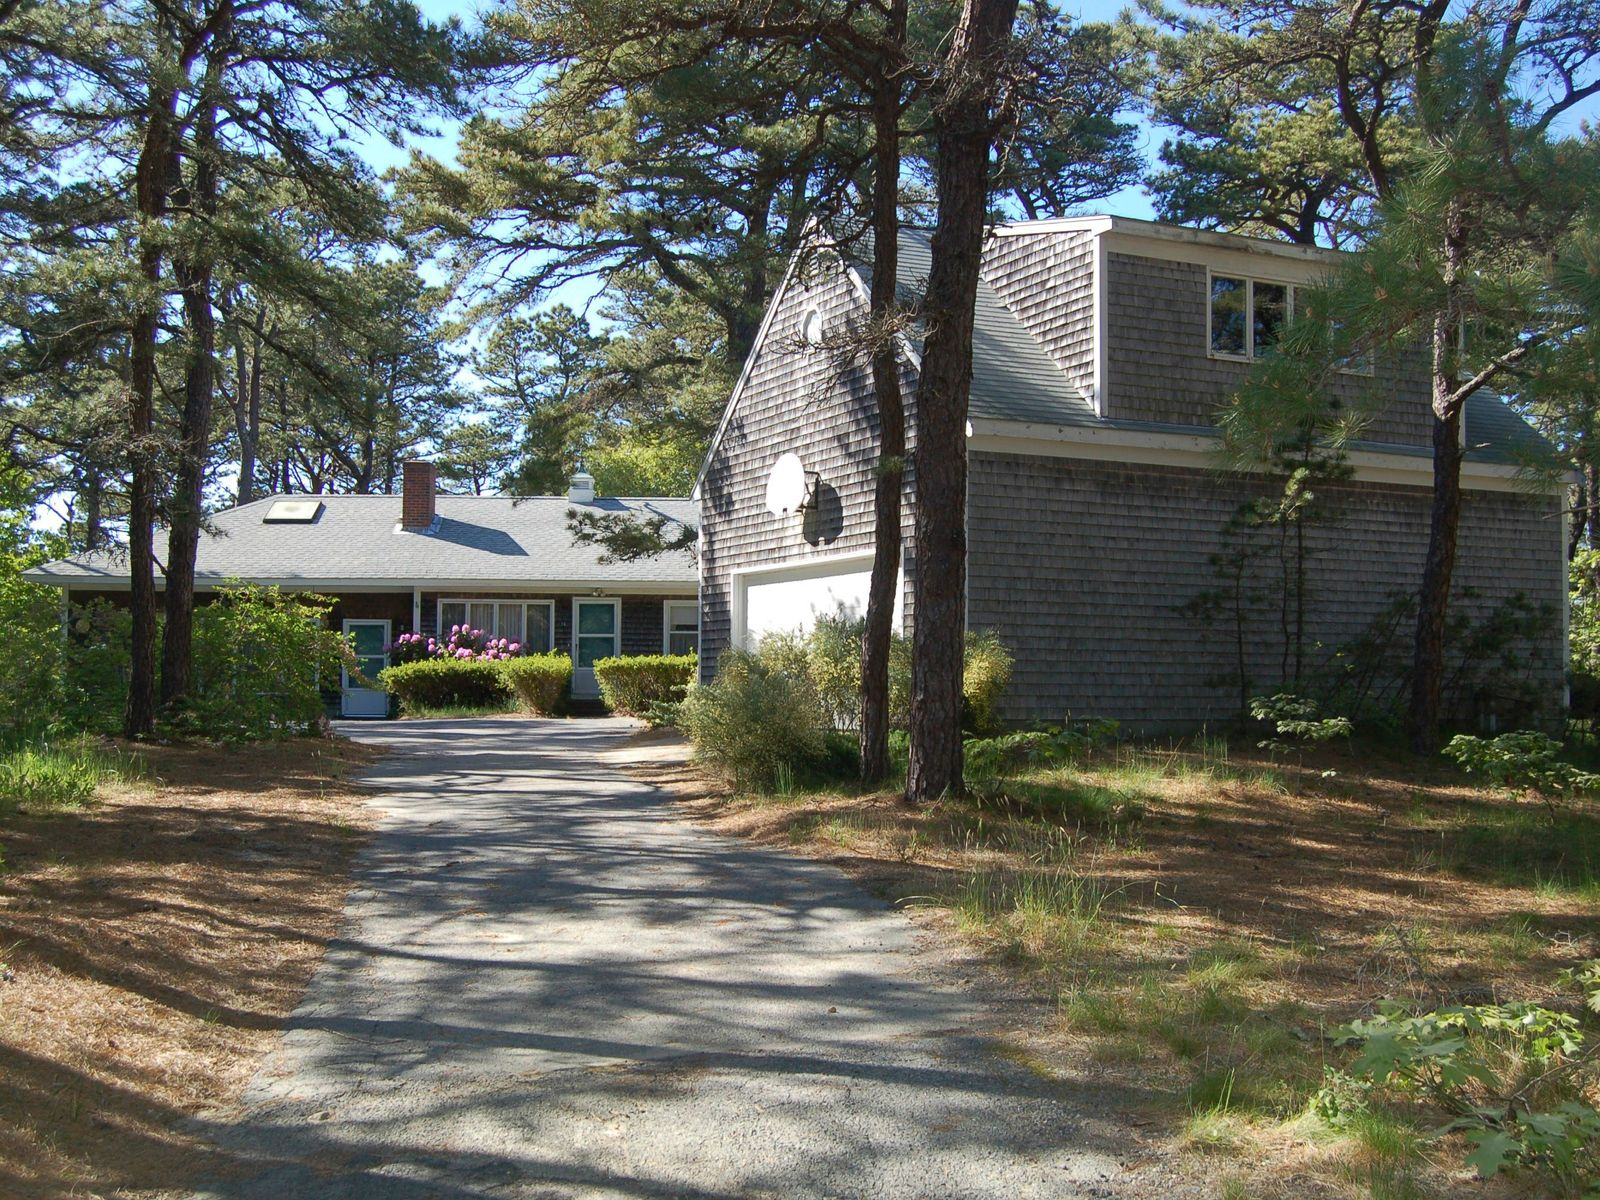 Wellfleet Pleasant Point Year-Round Home, Wellfleet MA Single Family Home - Cape Cod Real Estate